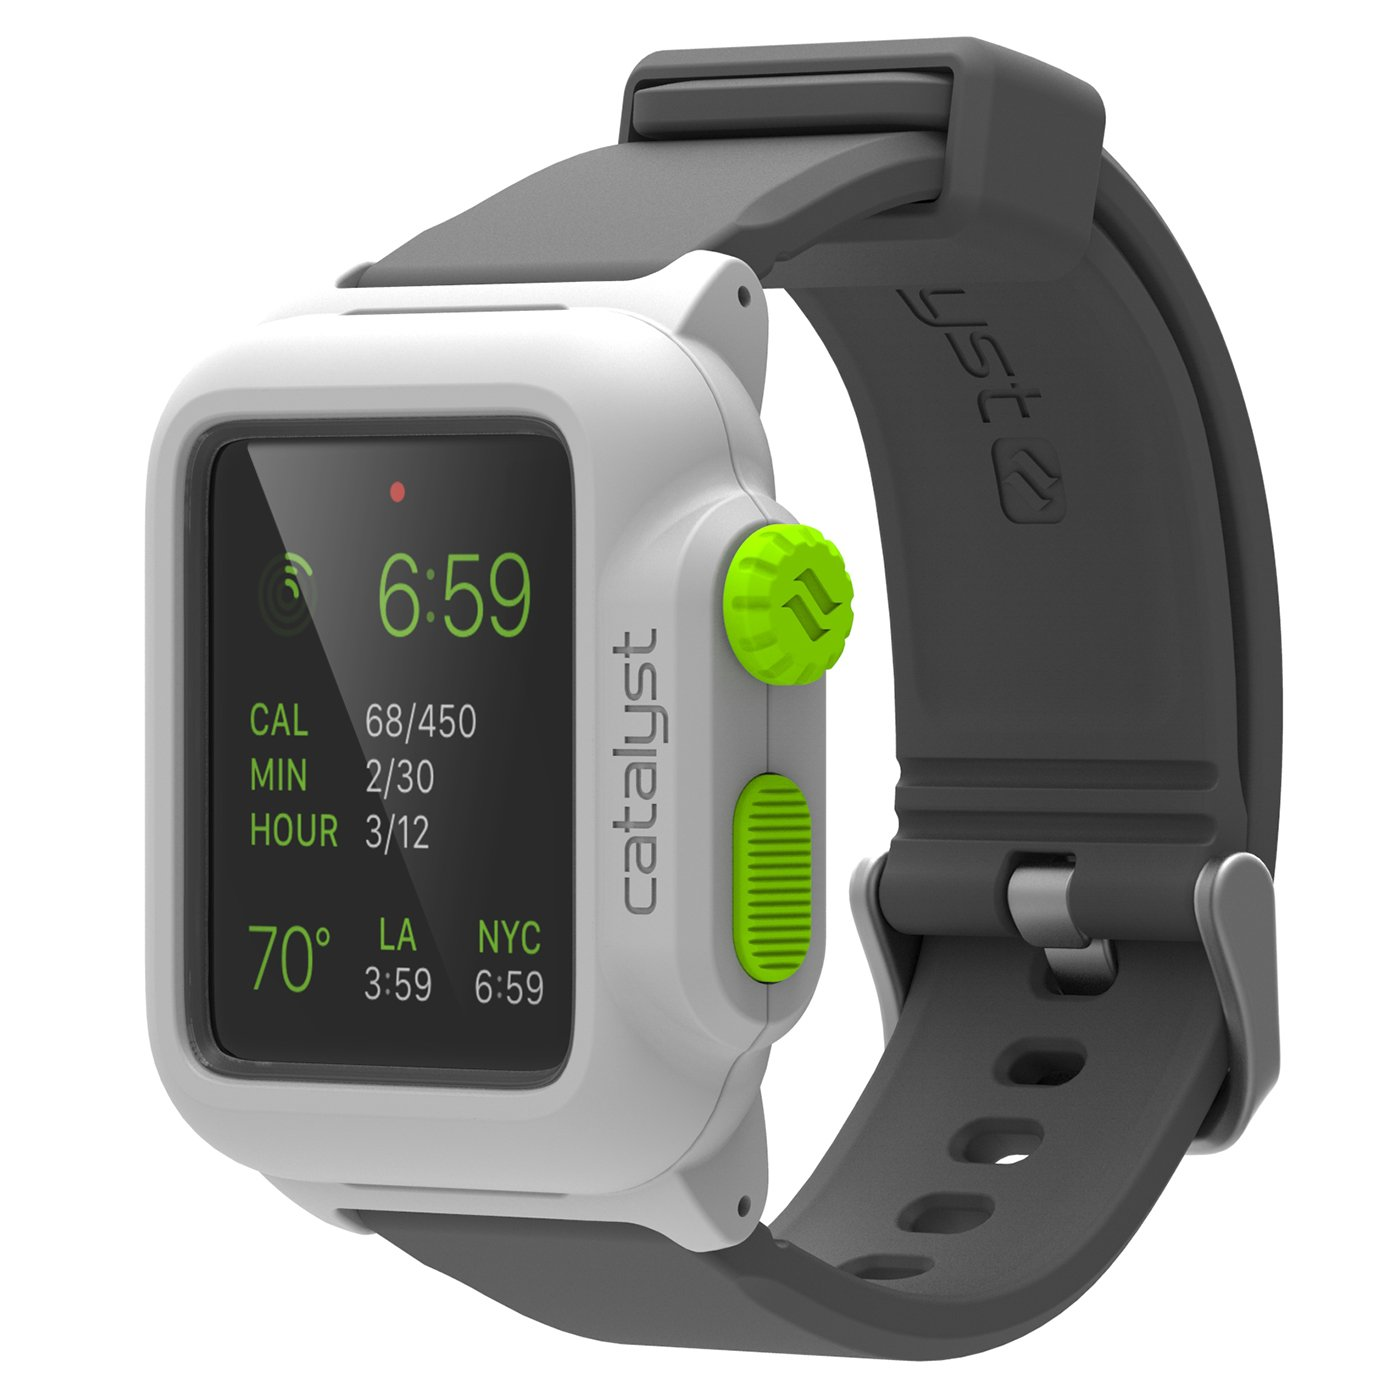 Top 20 Best Apple Watch Cases List And Reviews 2016 2017 On Spigen Tough Armor 2 Case For 42mm Series 3 Silver Catalyst Water Proof Shock Resistant 1 Green Pop